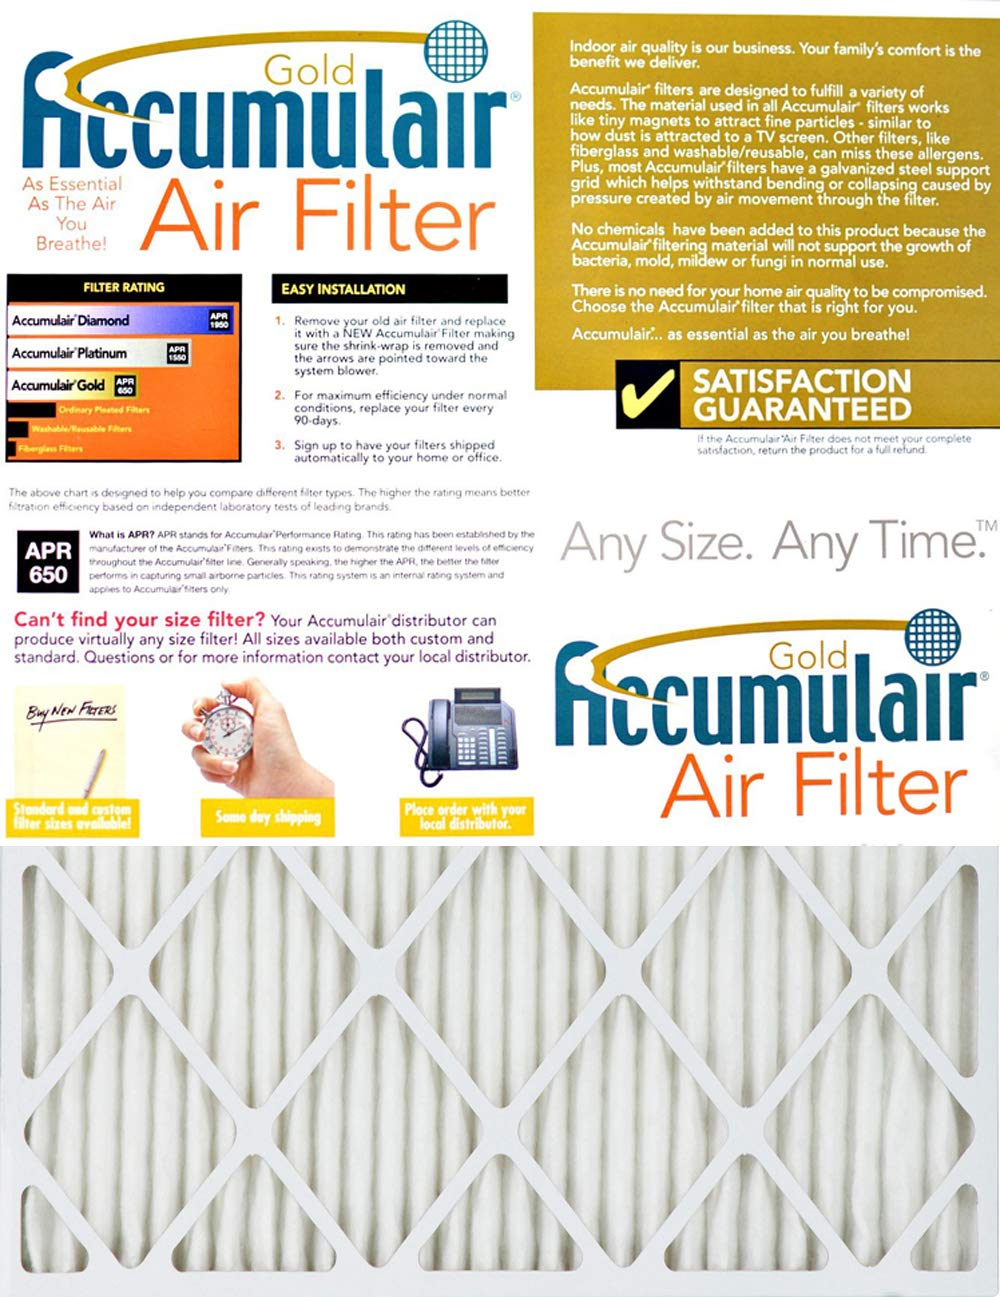 15.5x20.5 Accumulair Gold 16x21x1 MERV 8 Air Filter//Furnace Filter